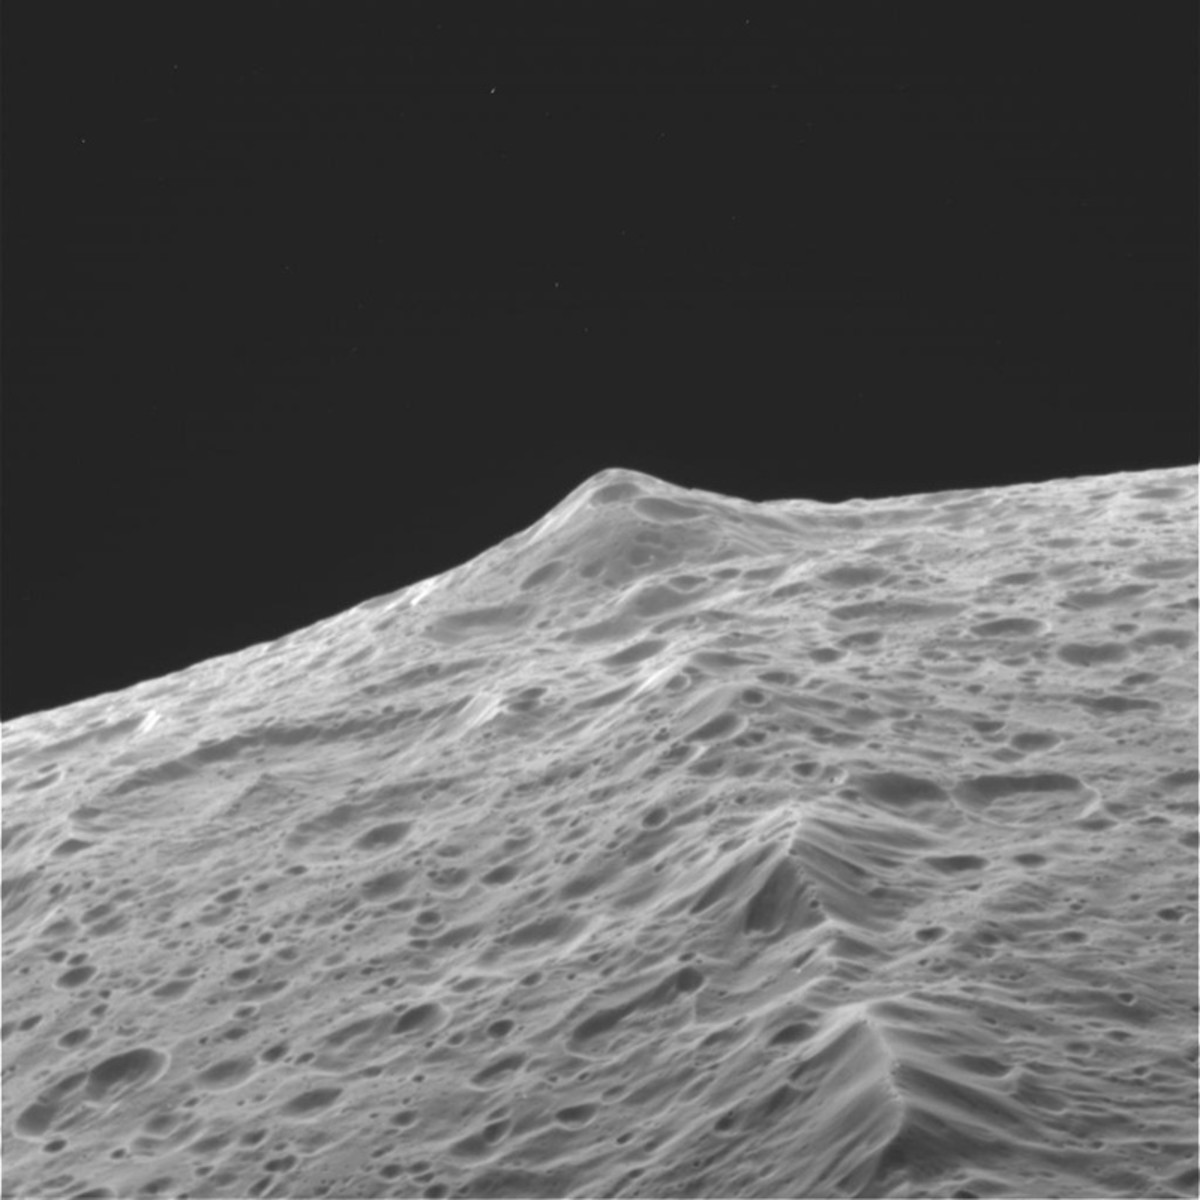 A close-up of the ridge.